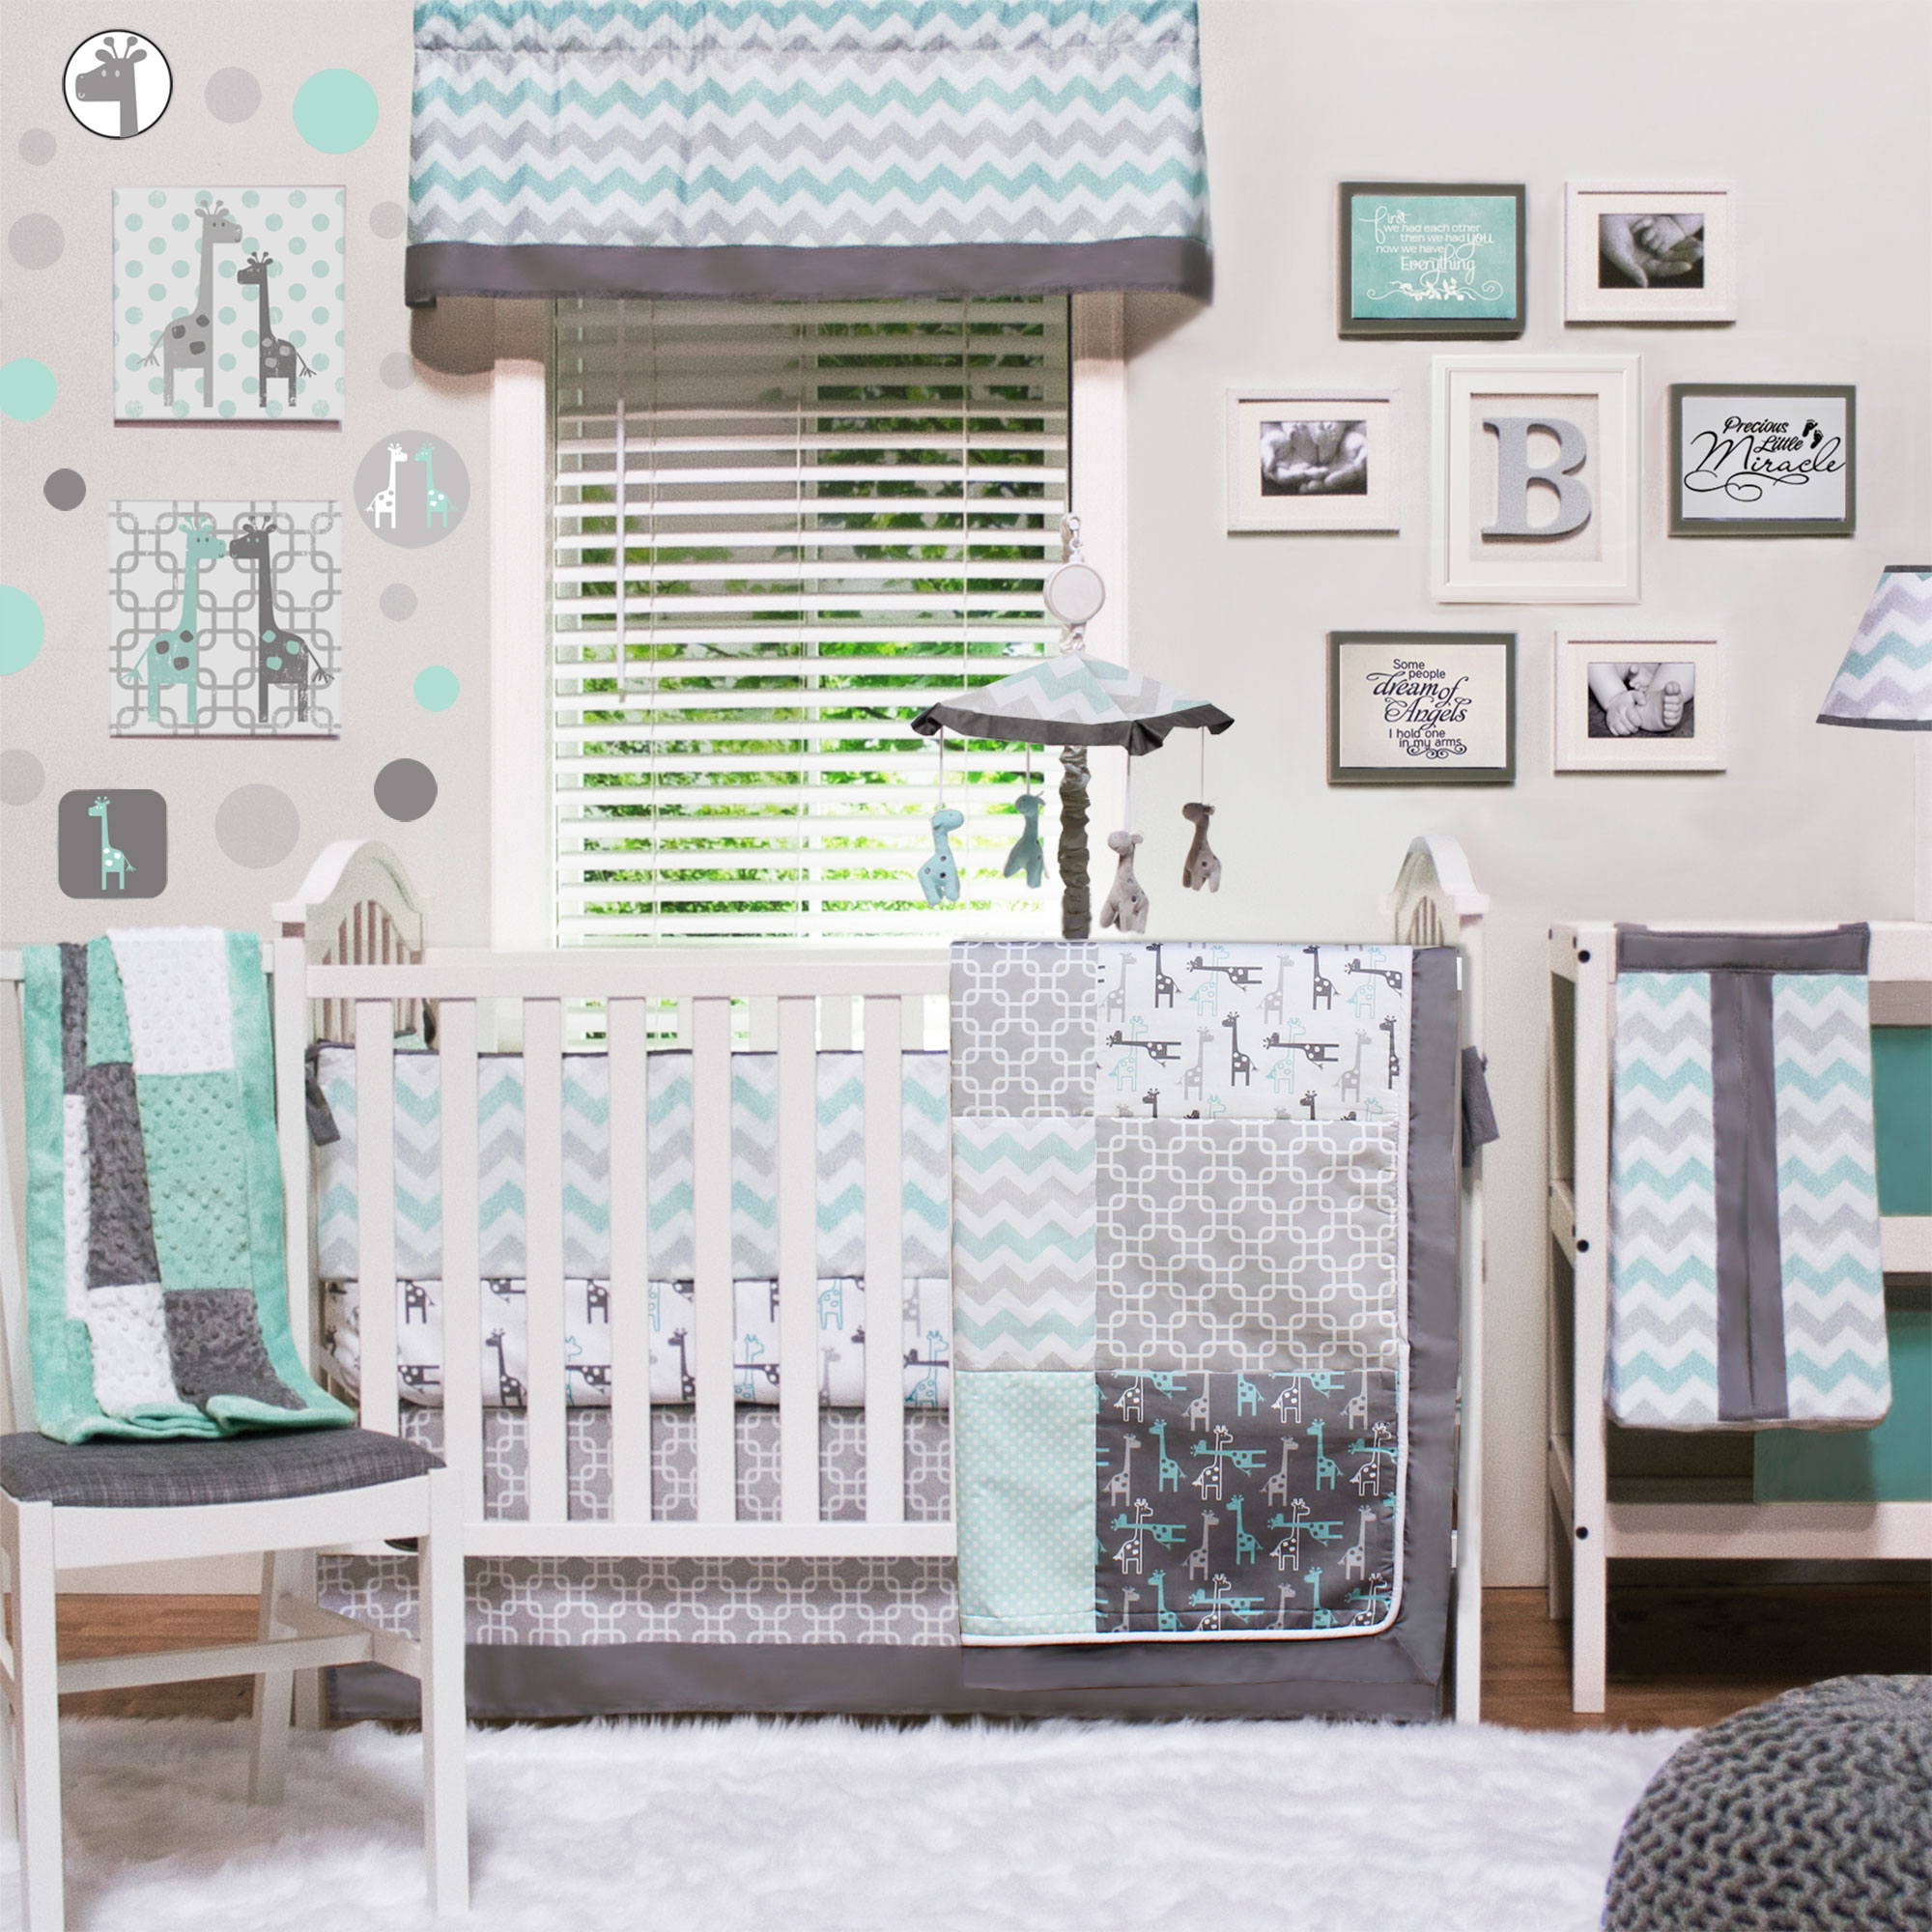 Peanut Shell Crib Bedding Set - Grey and Aqua - Uptown Gi...